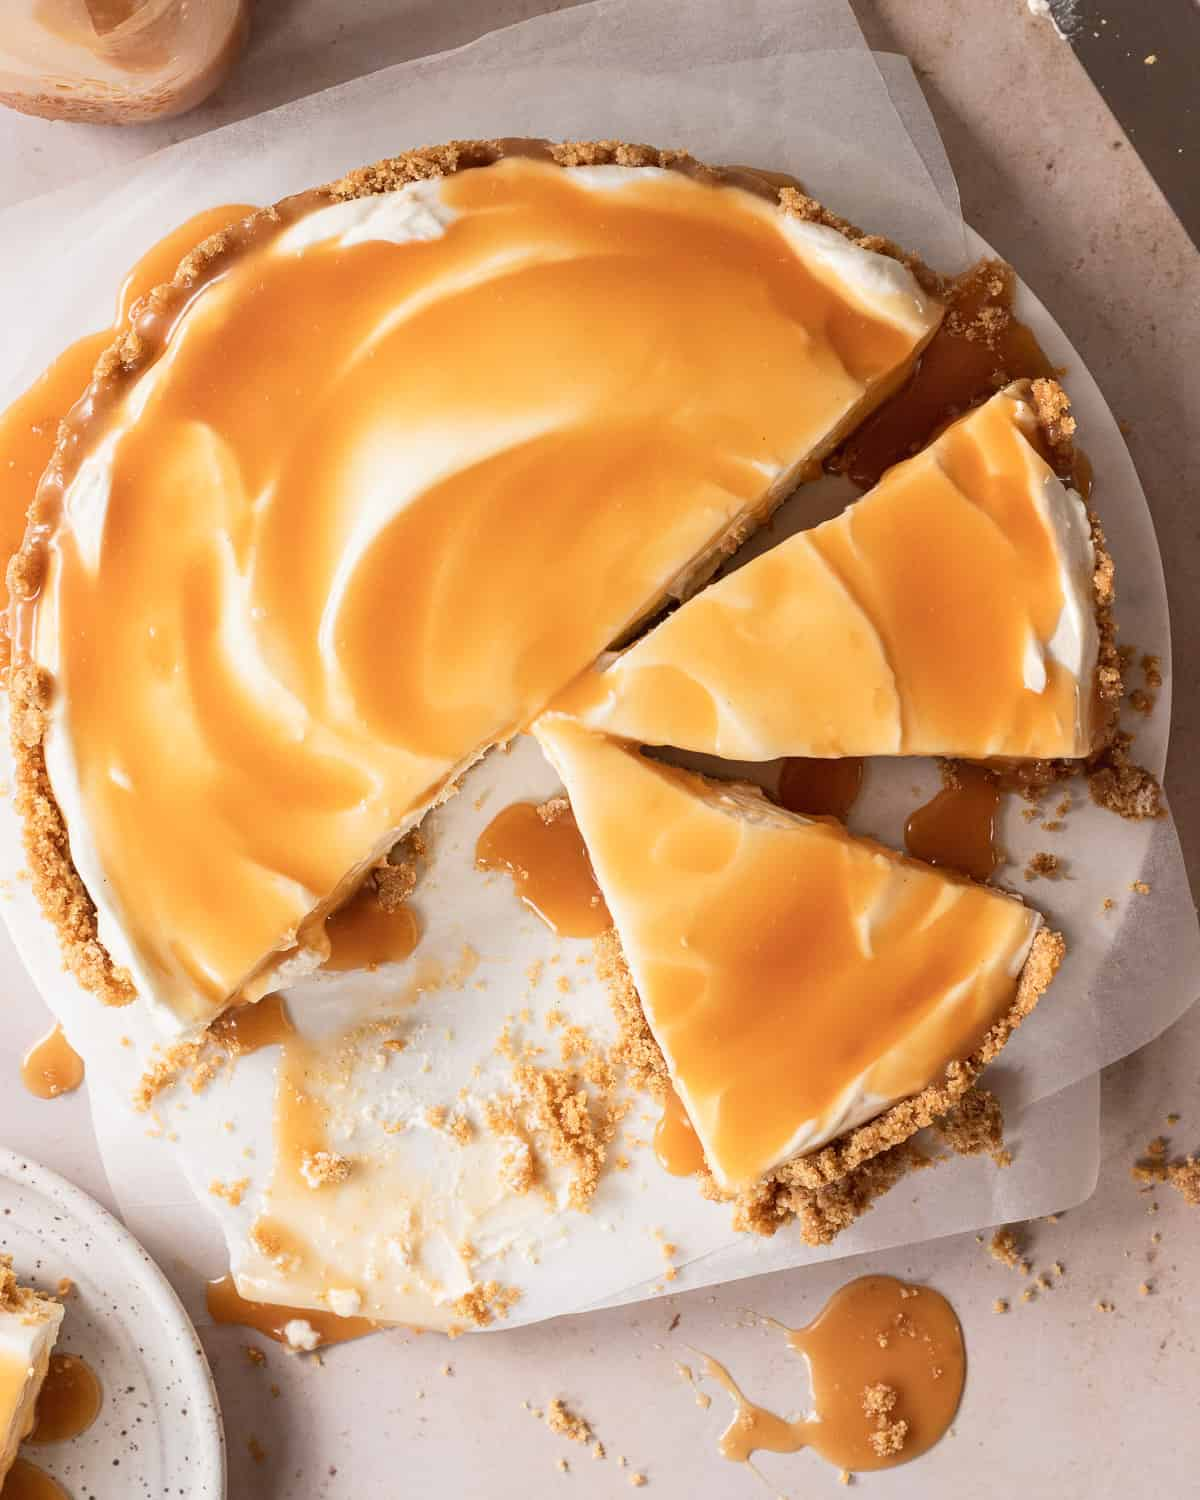 overhead shot of the cheesecake cut into slices with the caramel sauce dripping down the sides.